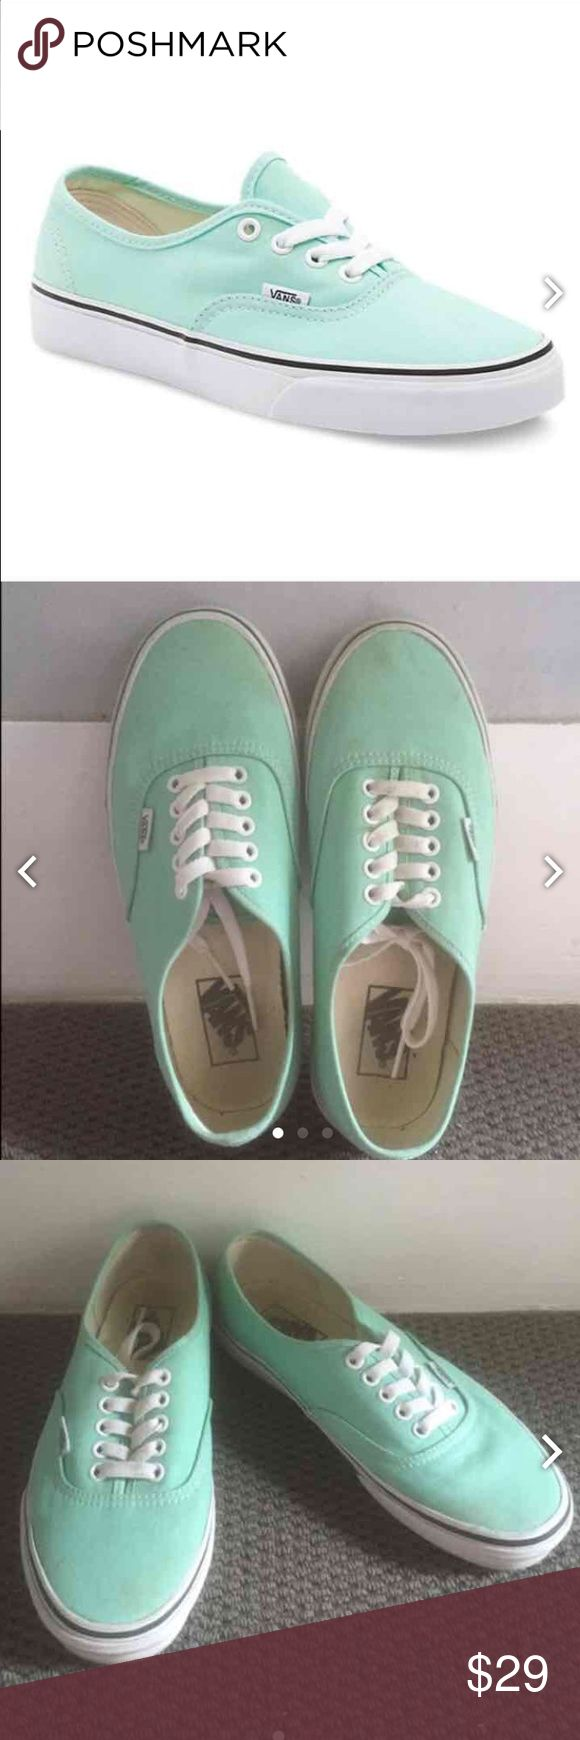 Teal Vans Team vans. Worn once, size was too big for me. Some dirt stains, but can easily be cleaned.   READ INFO BELOW  No trades, all sales are final.   Always willing to negotiate prices, make me an offer!   Bundles of 3 or more are 15% off!!!   I ship between 2-3 days based on my work/ school schedule and the lack of a home printer.  All items come from a smoke free home!   Feel free to ask anymore questions you have(: Vans Shoes Sneakers